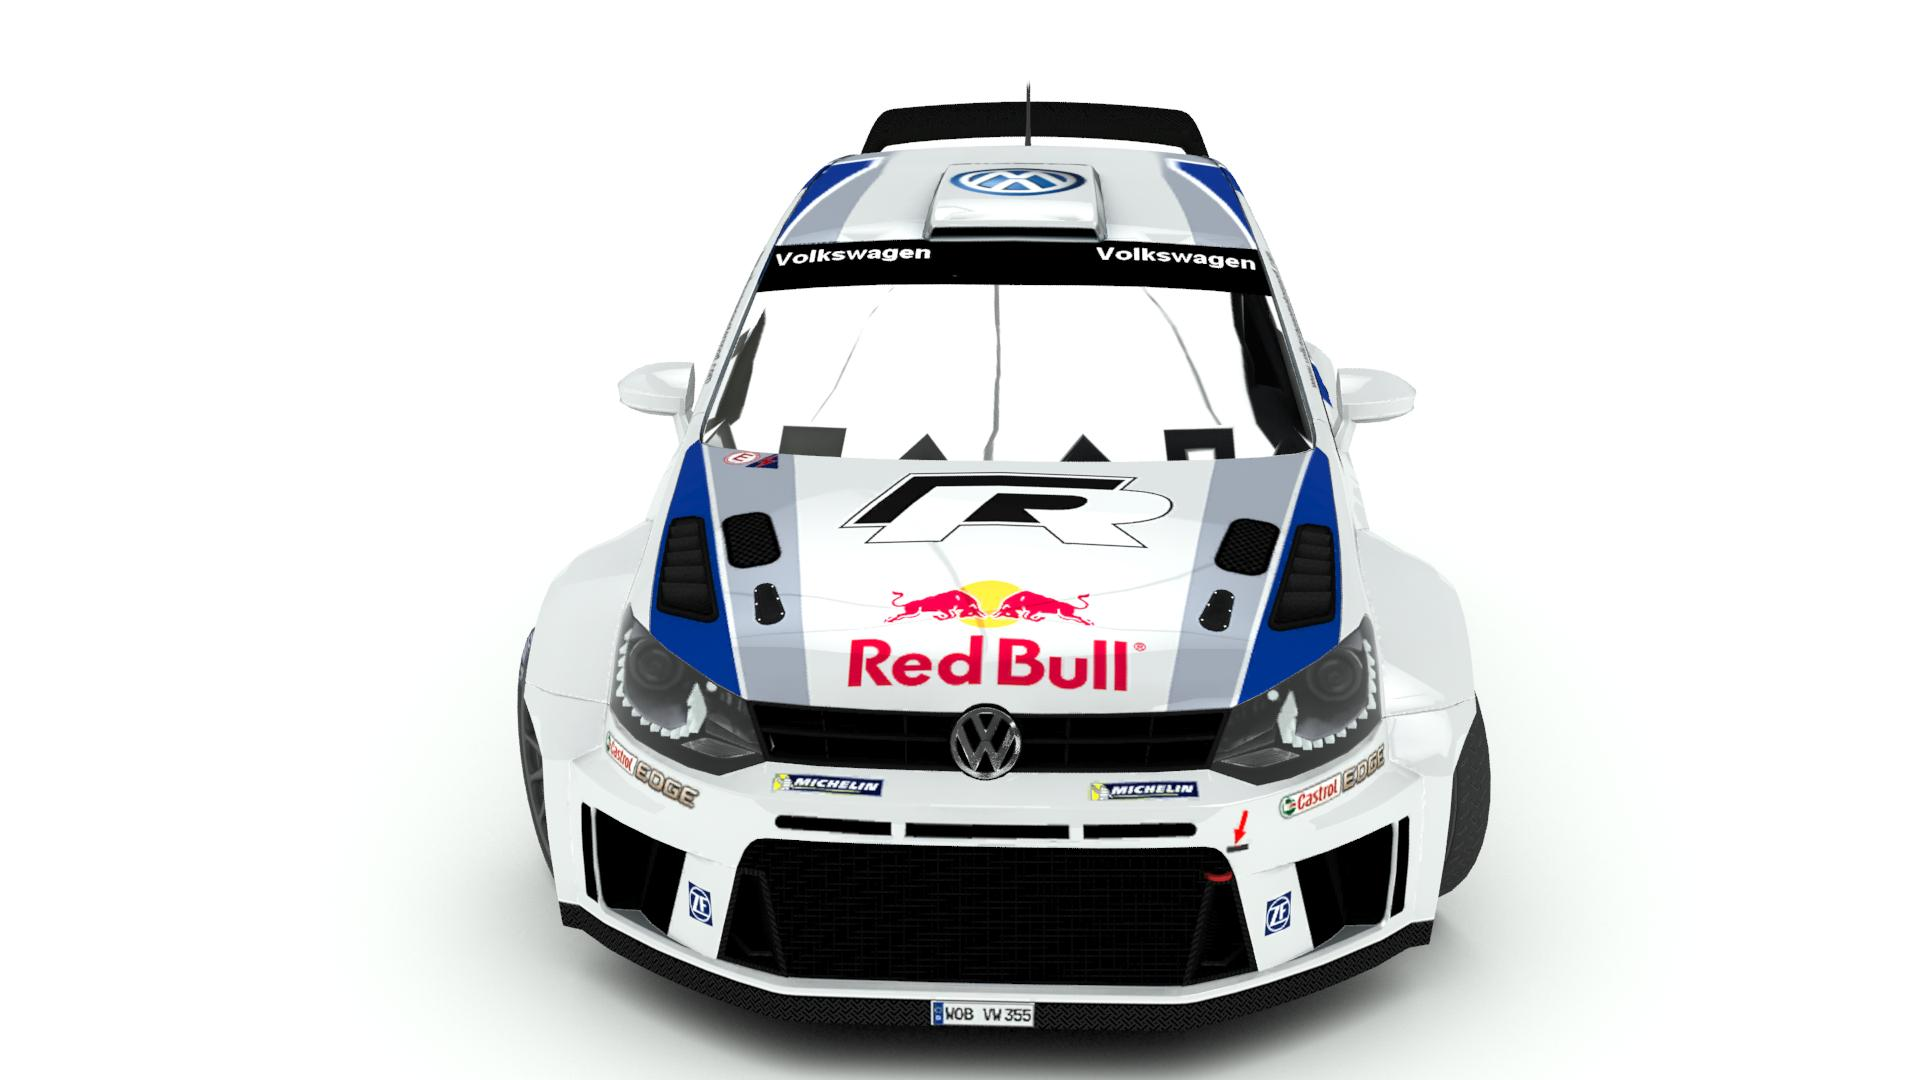 vw polo wrc red bull mesa 39 s artworks mesa 39 s artworks vw polo wrc red bull. Black Bedroom Furniture Sets. Home Design Ideas